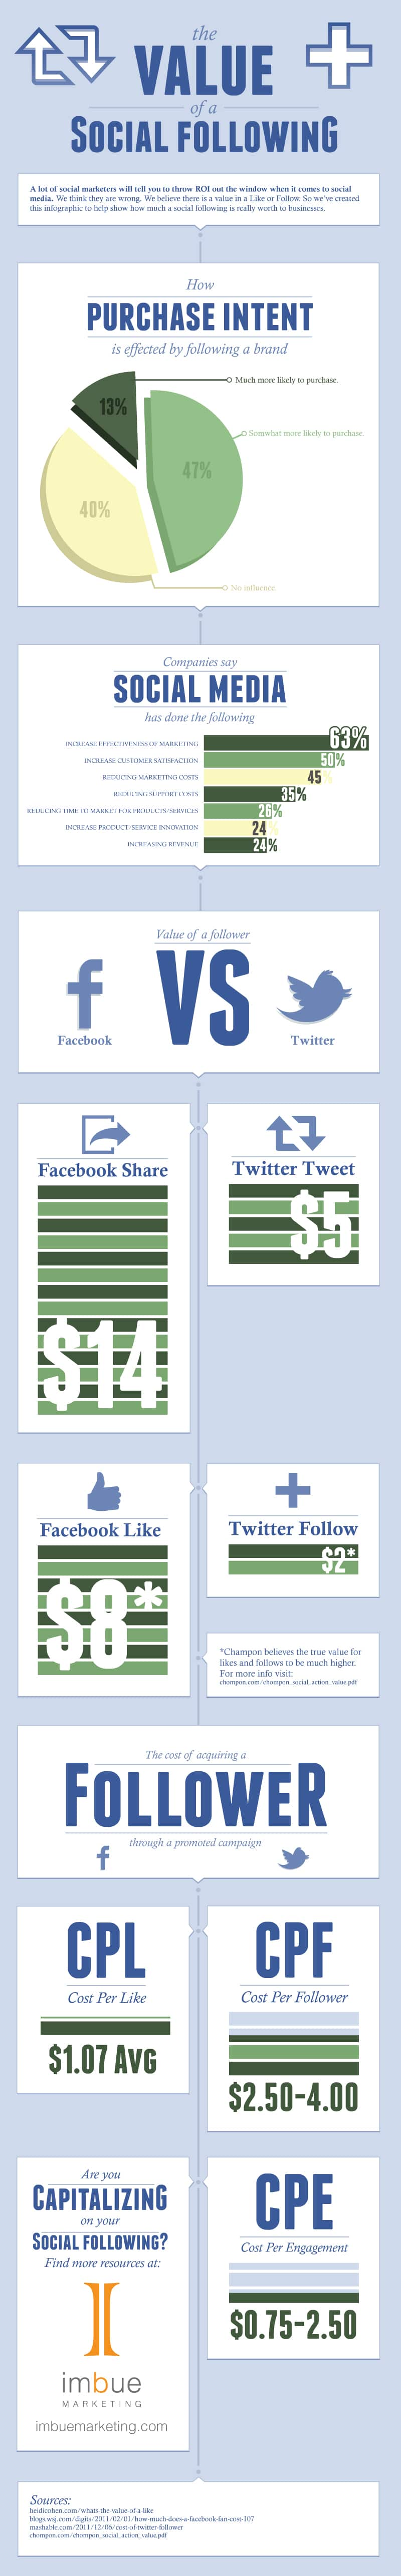 The Monetary Value Of A Social Following [Infographic]